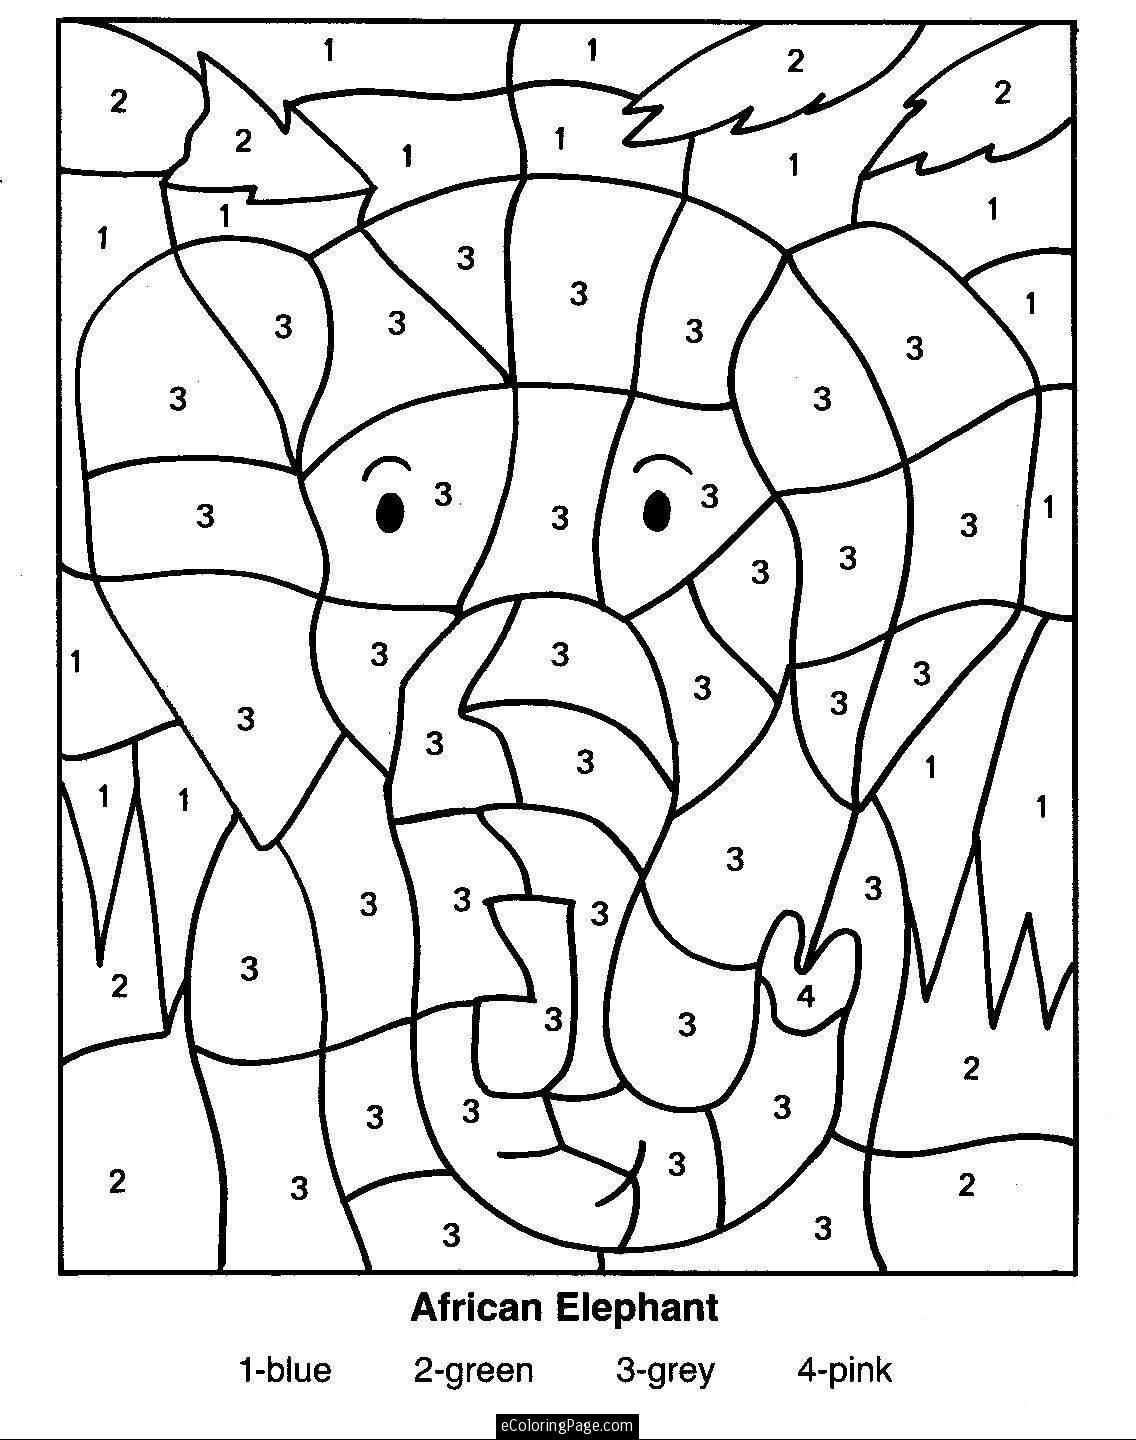 numbers coloring pages pdf Collection-Color By Numbers Elephant Coloring Page for Kids Printable 2-l